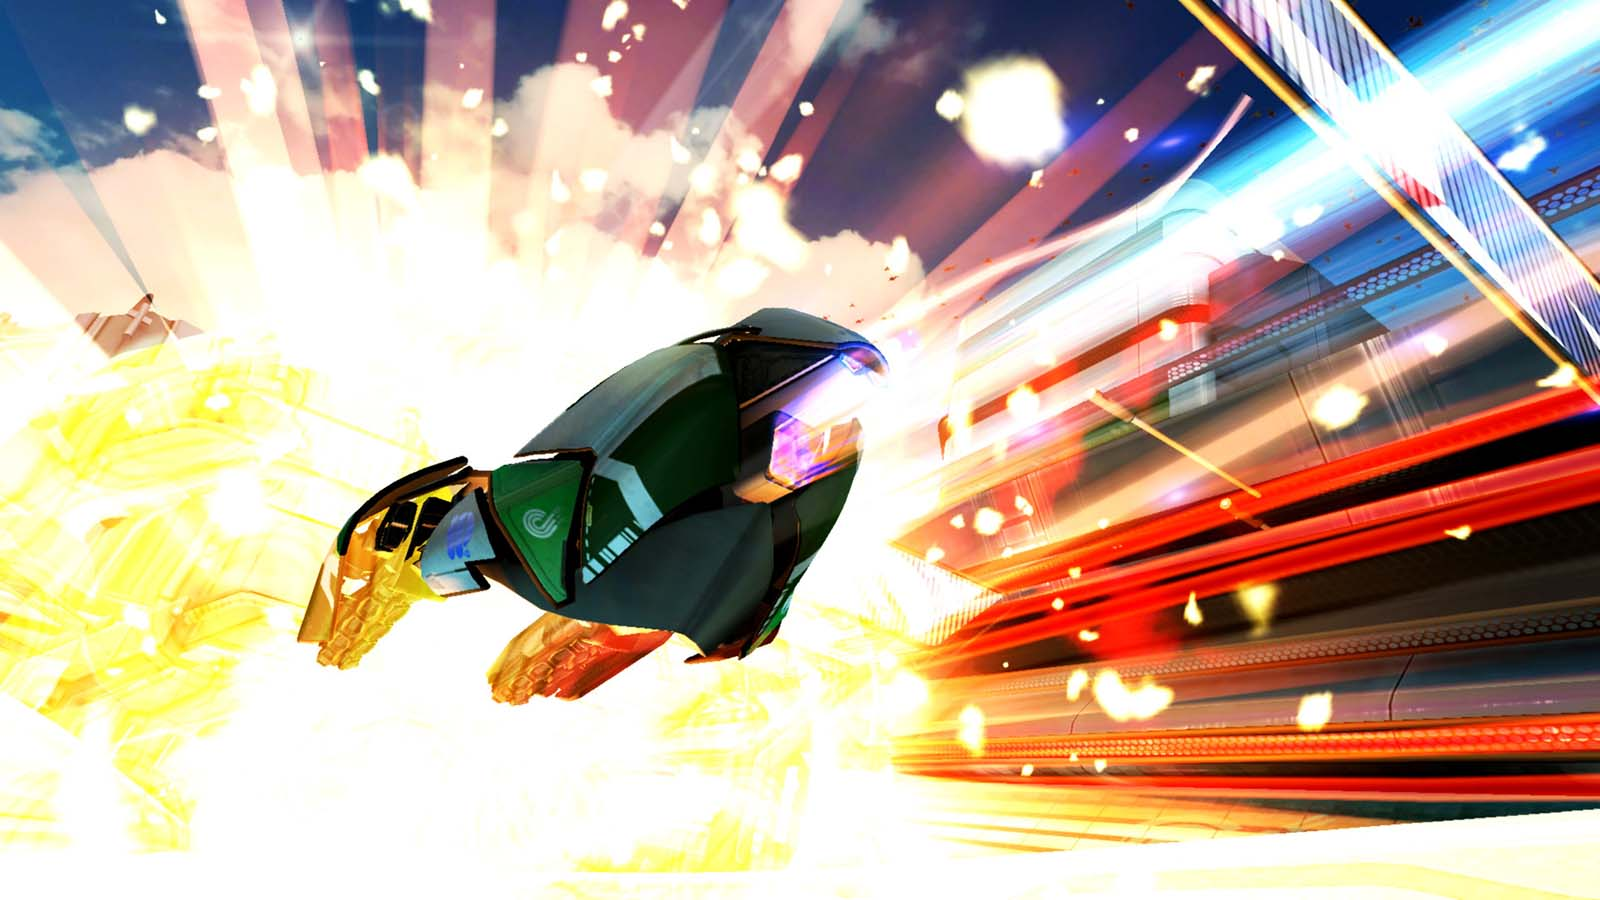 Wipeout HDFury Review